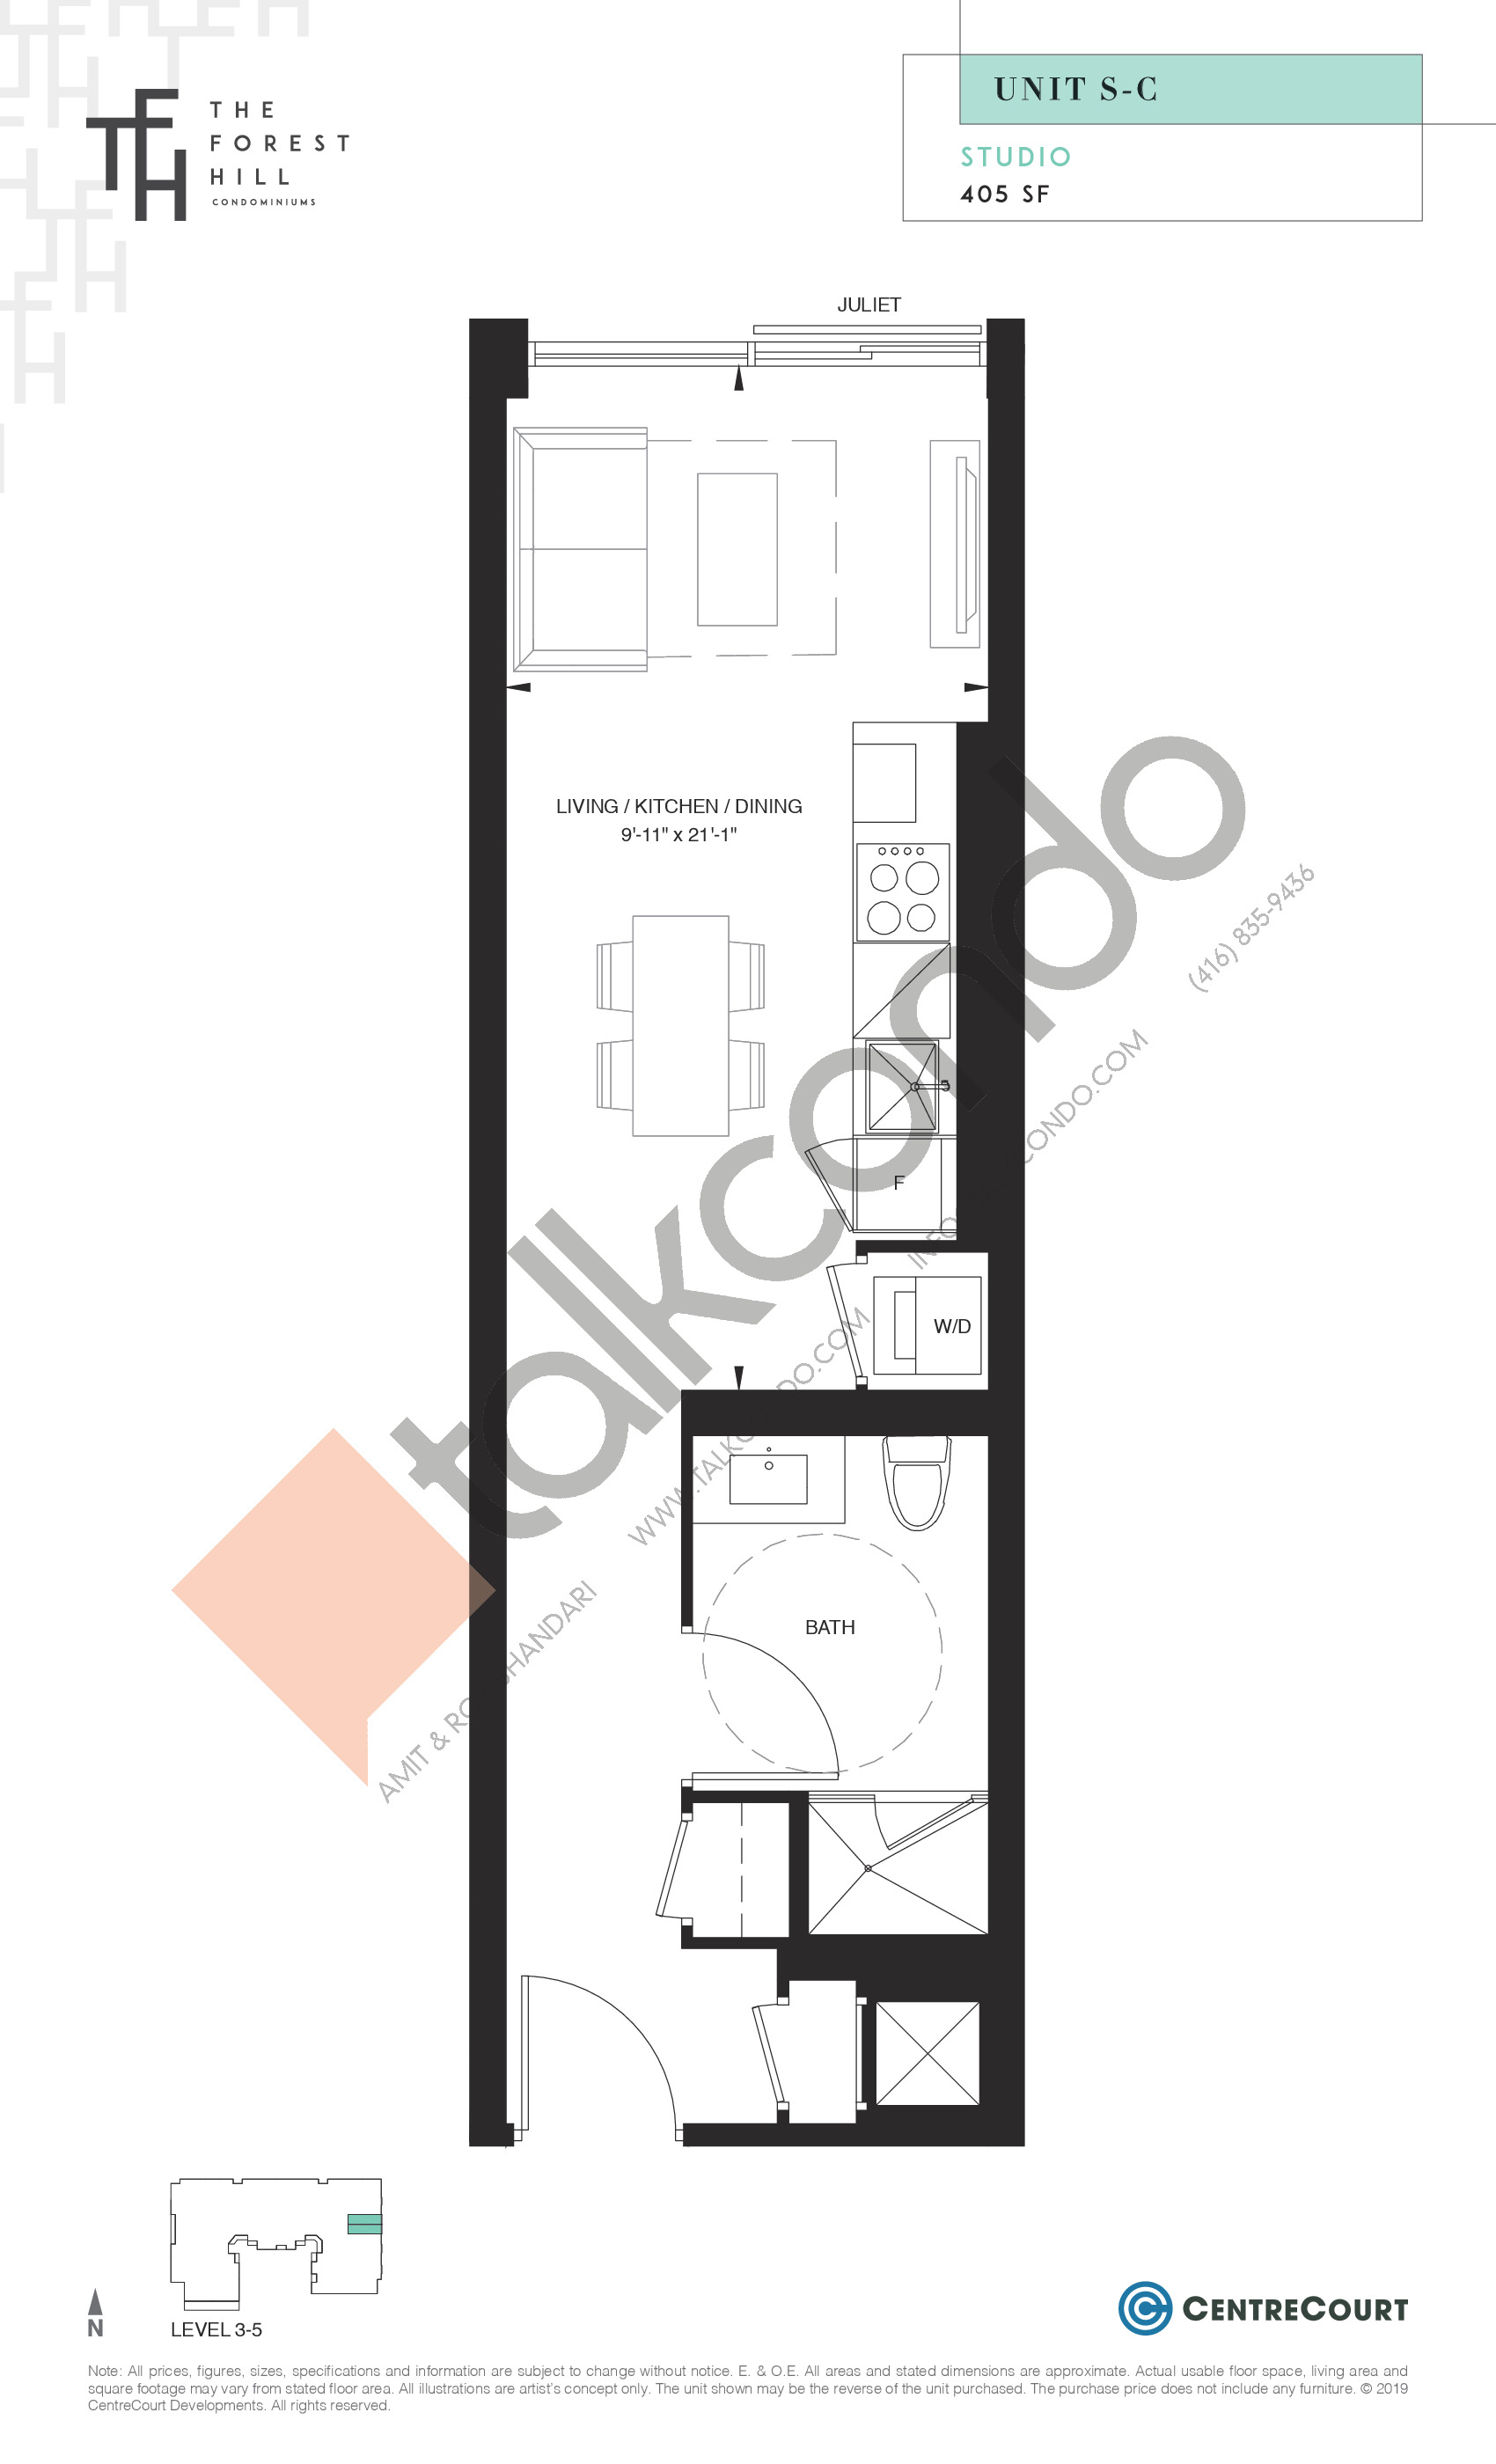 Unit S-C Floor Plan at The Forest Hill Condos - 405 sq.ft